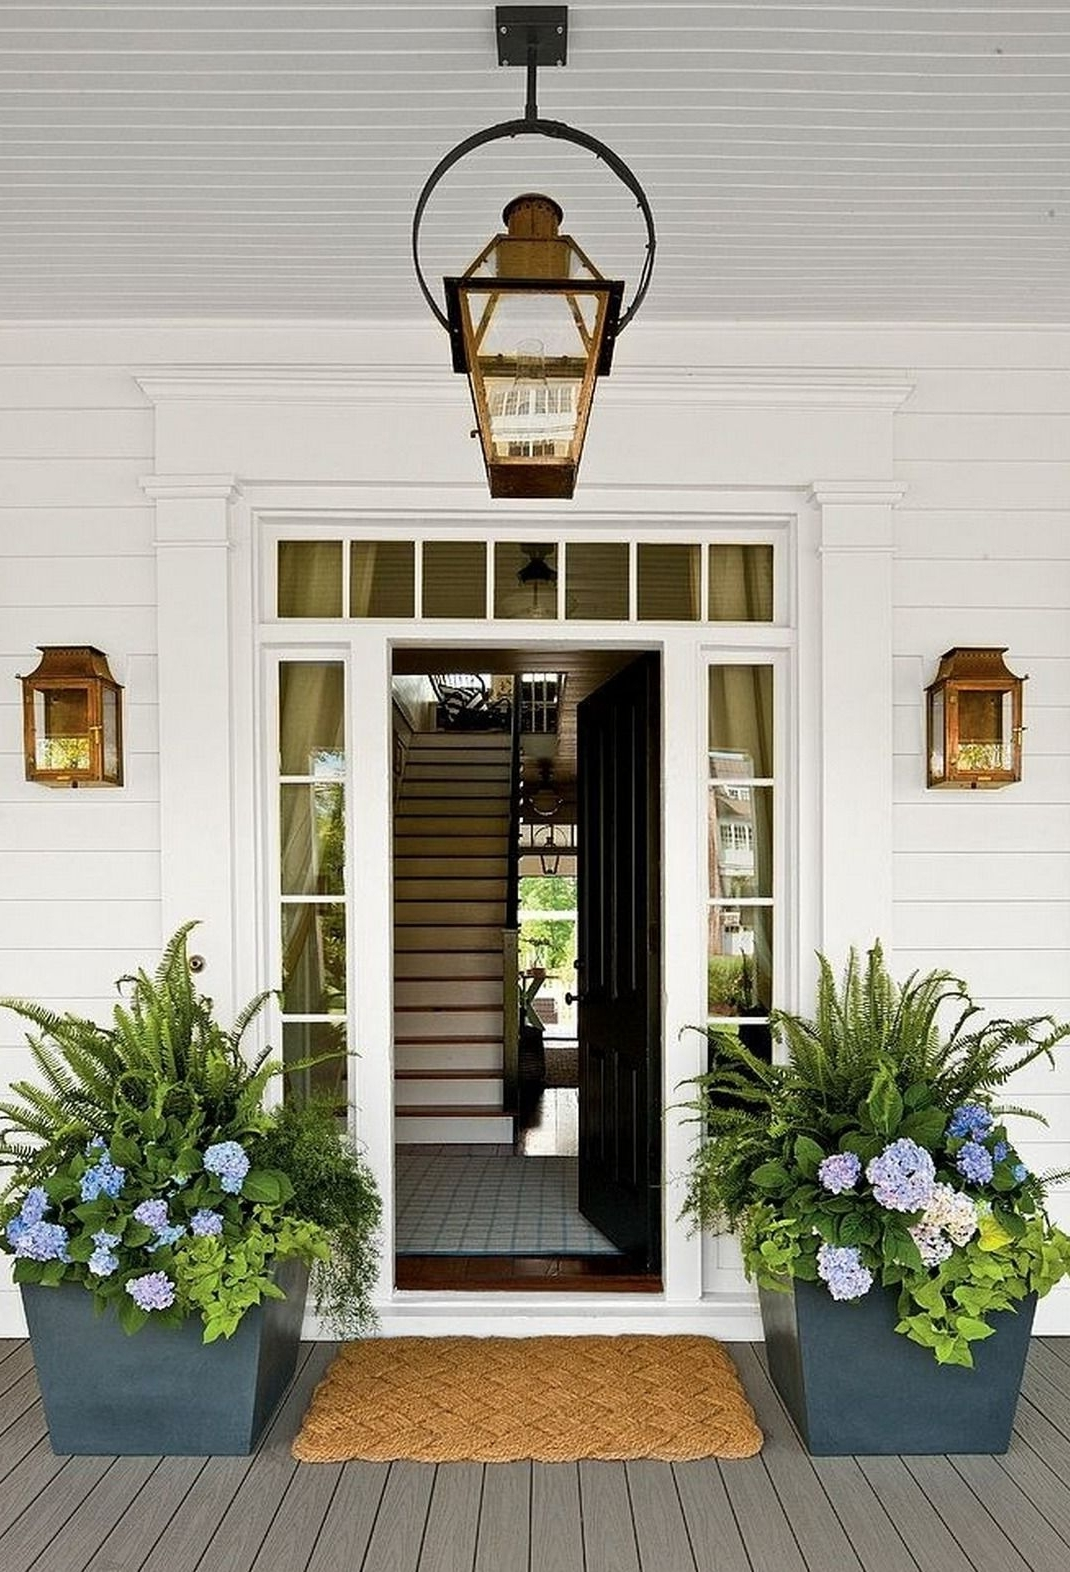 Preferred Outdoor Lanterns For Front Porch For Exterior Lighting {Charming Outdoor Lanterns (View 19 of 20)